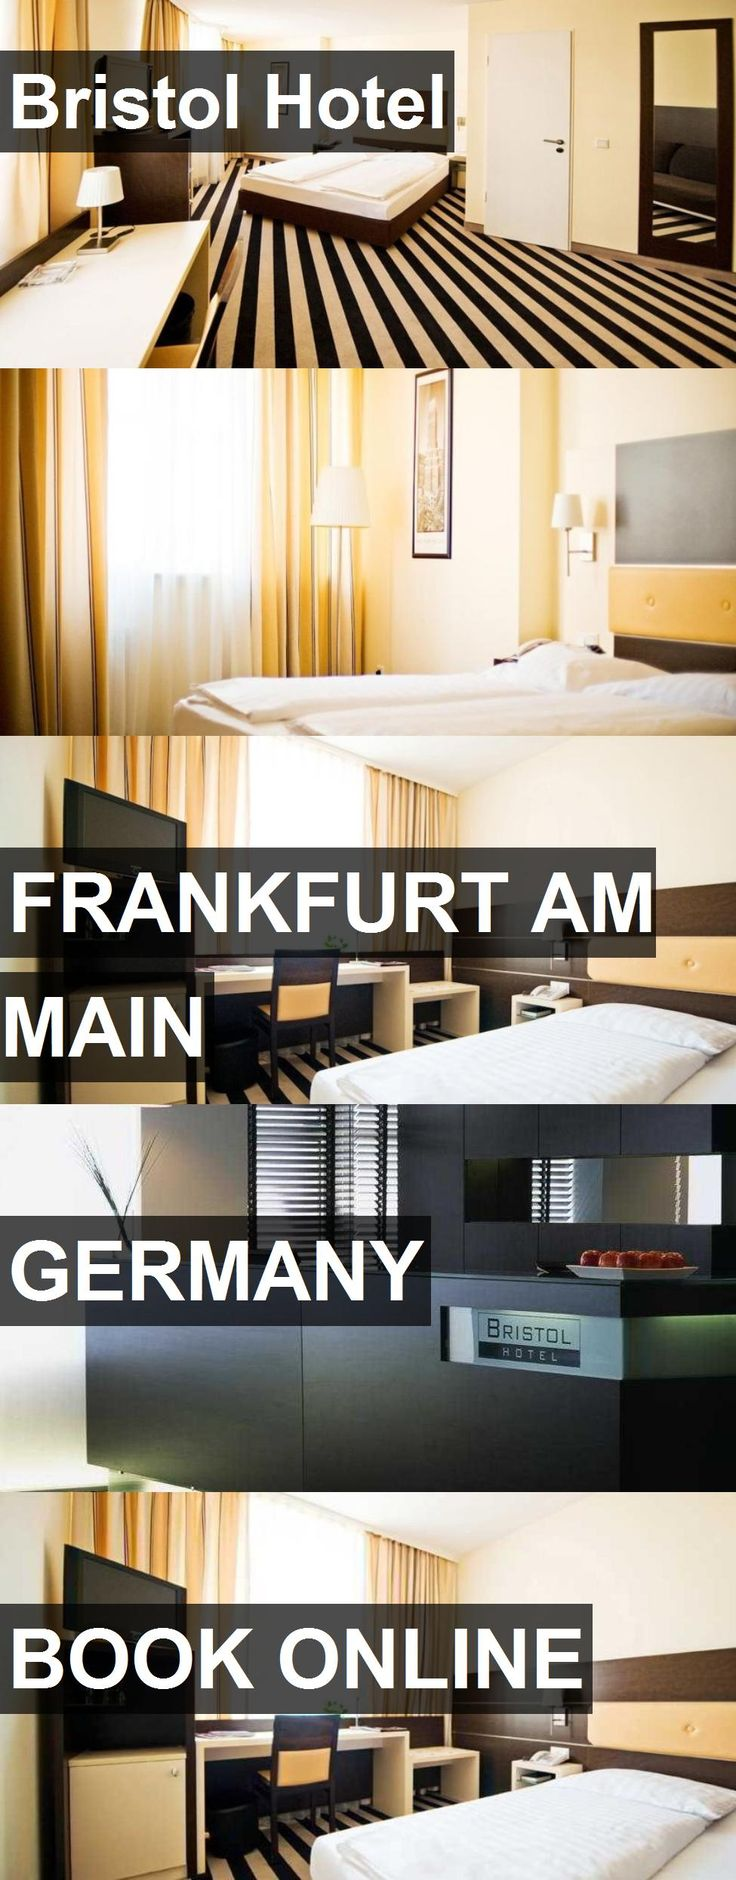 Hotel Bristol Hotel in Frankfurt am Main, Germany. For more information, photos, reviews and best prices please follow the link. #Germany #FrankfurtamMain #BristolHotel #hotel #travel #vacation